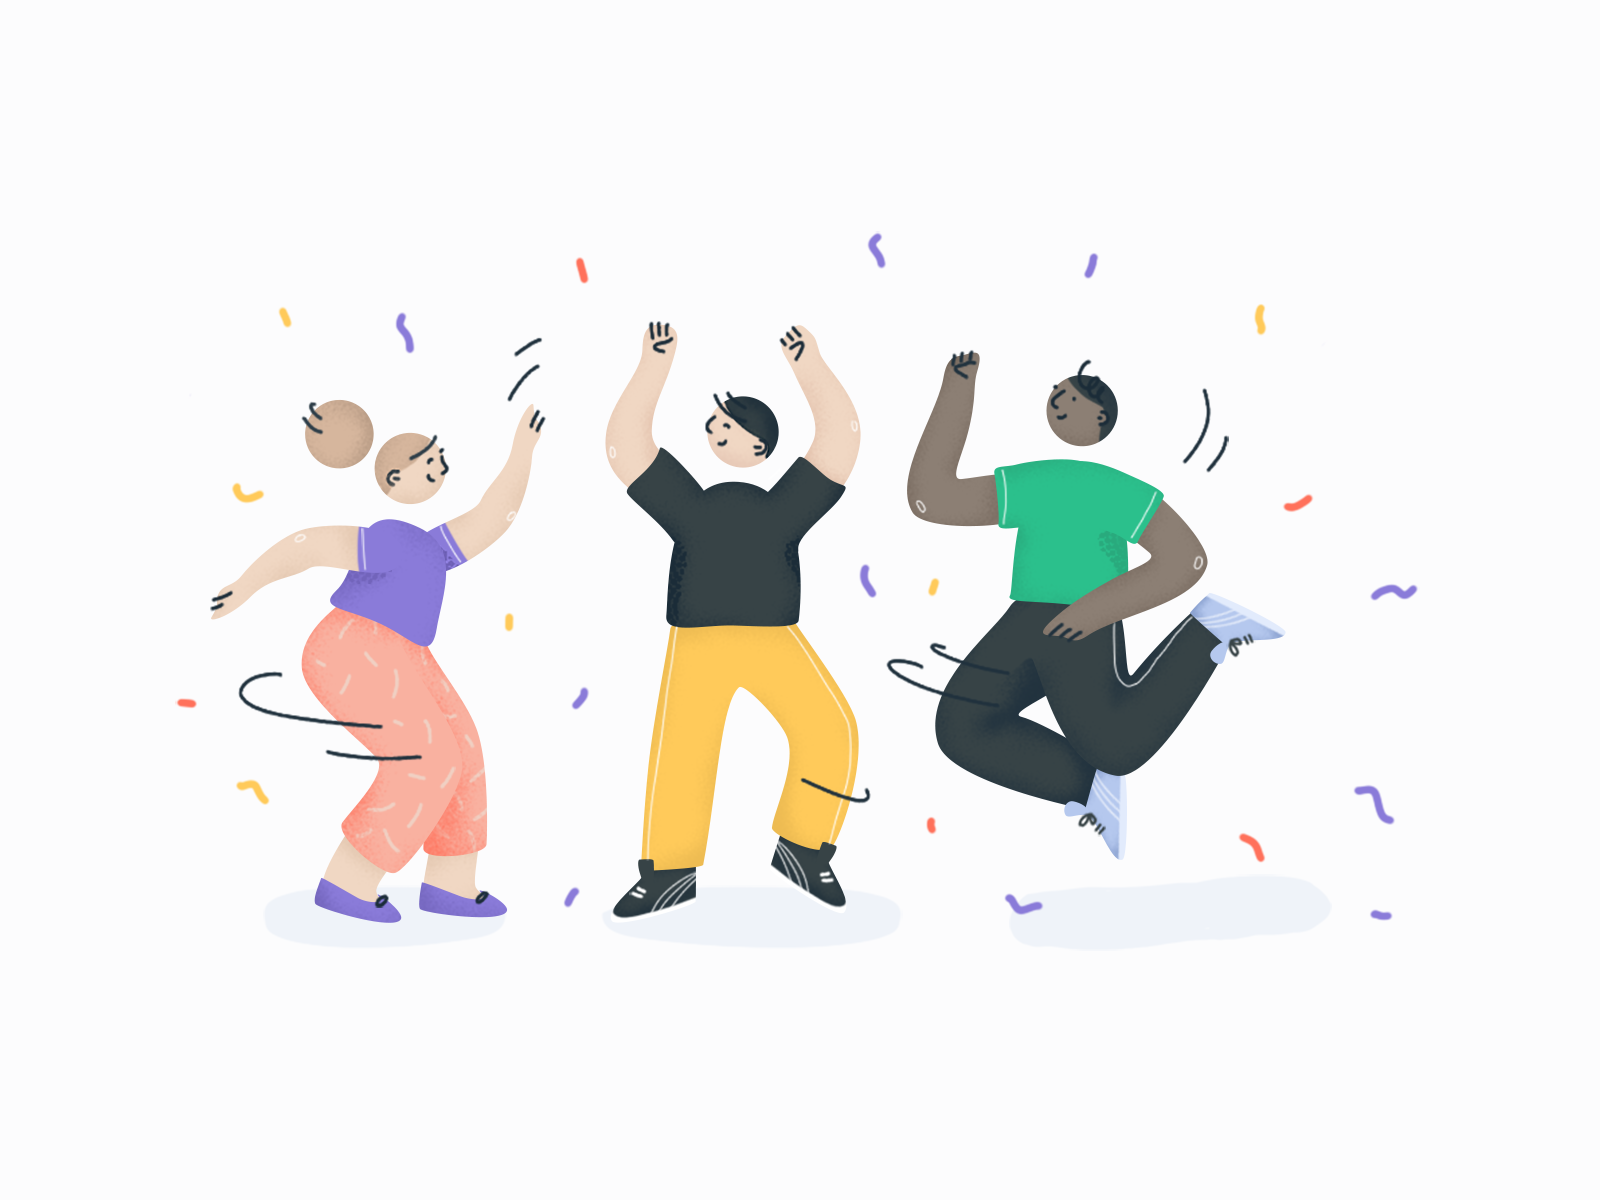 You've made it! Now share the good news 👊 new job celebrate dance party man woman career success character illustration